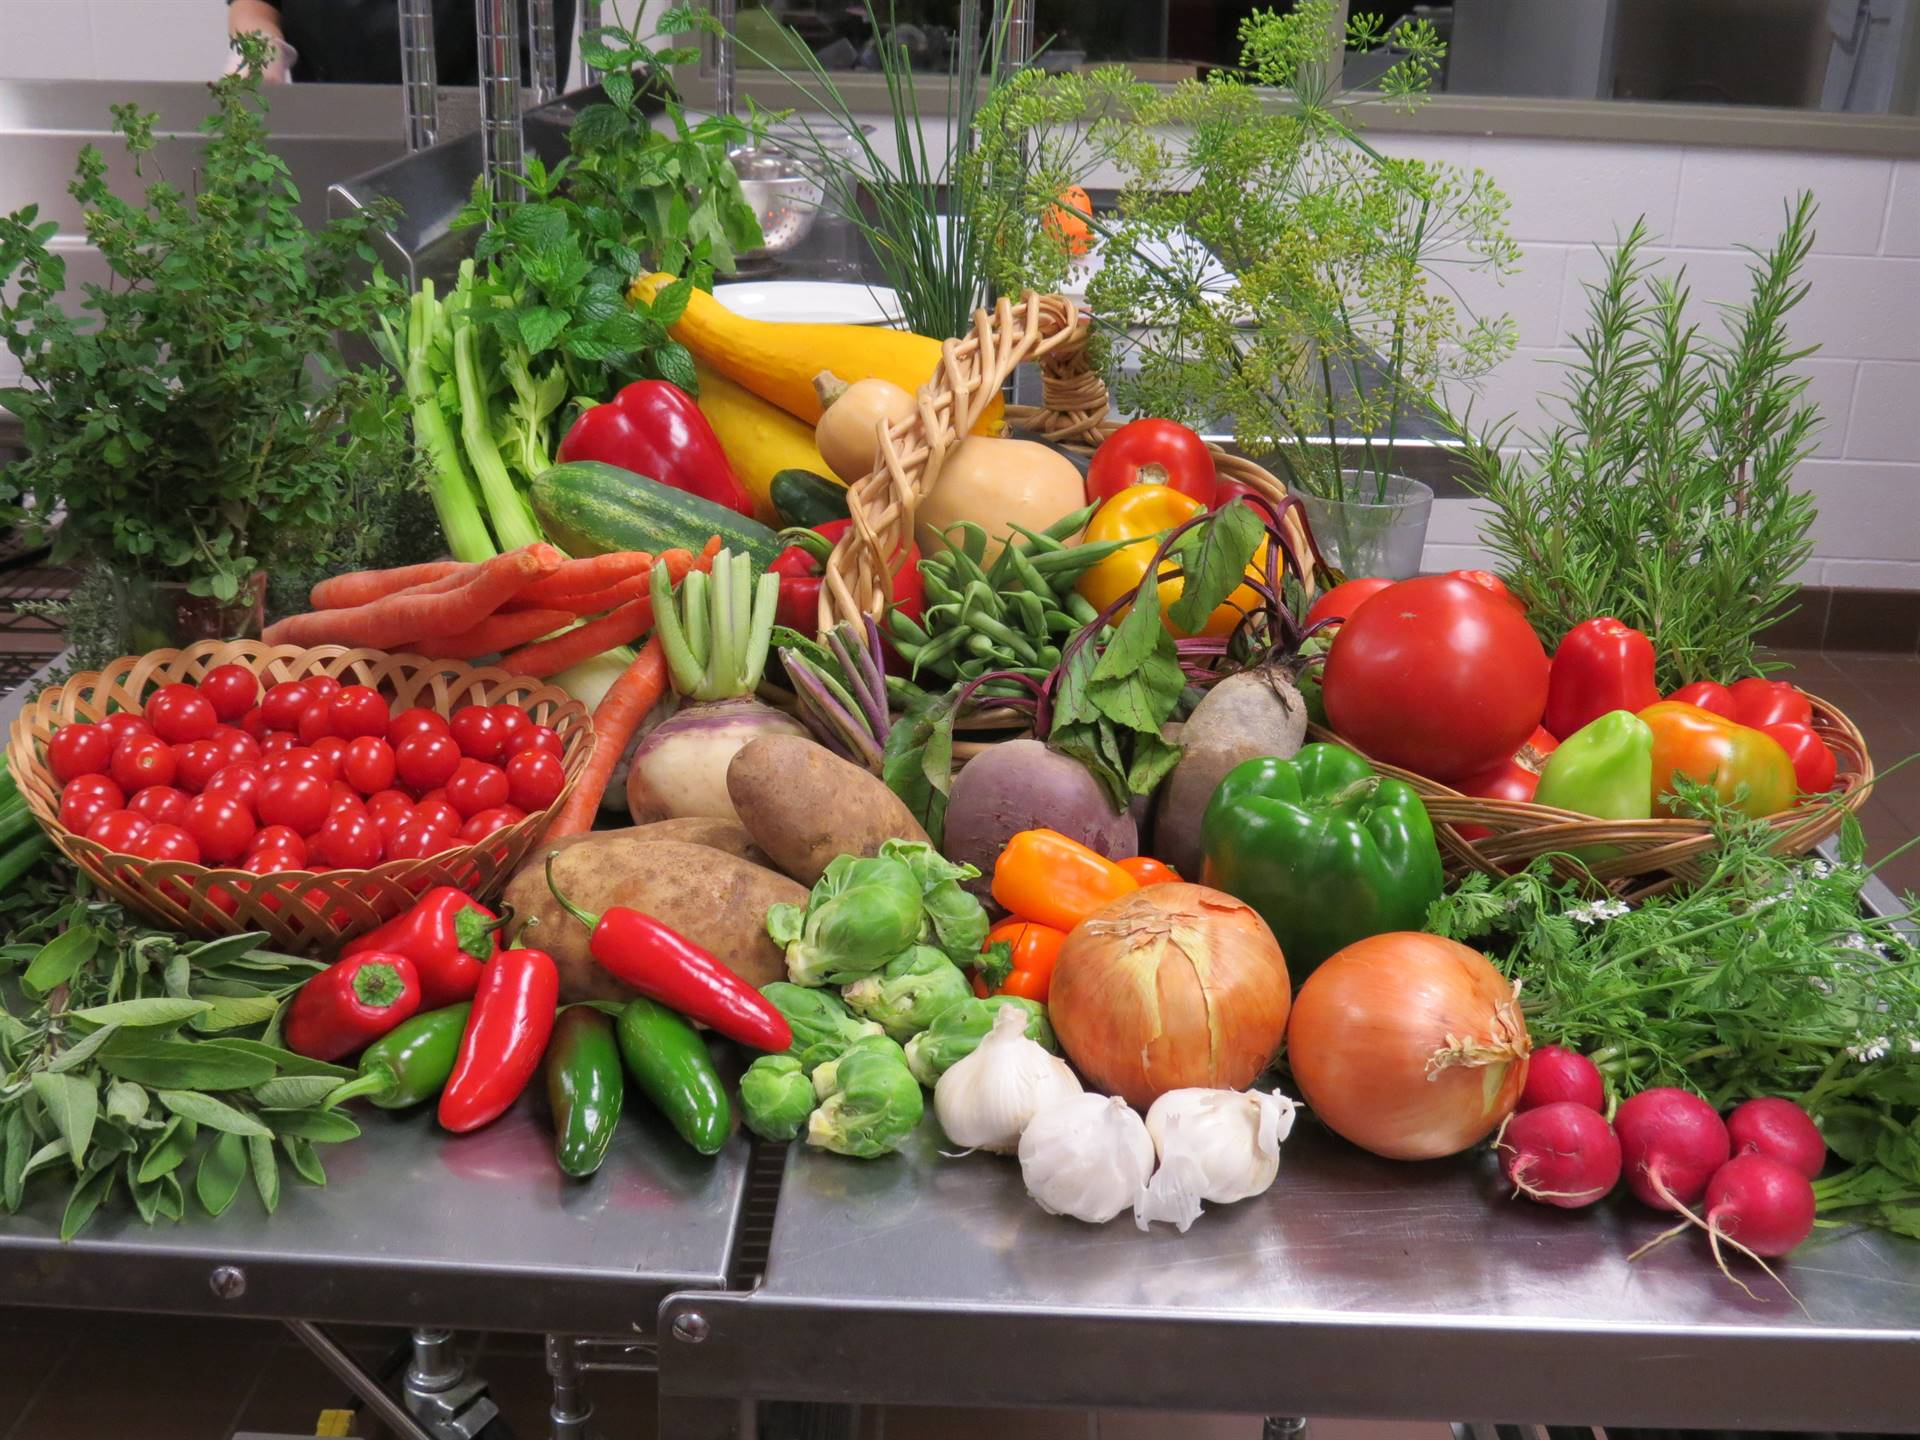 Beautiful display of colorful vegetables from the garden